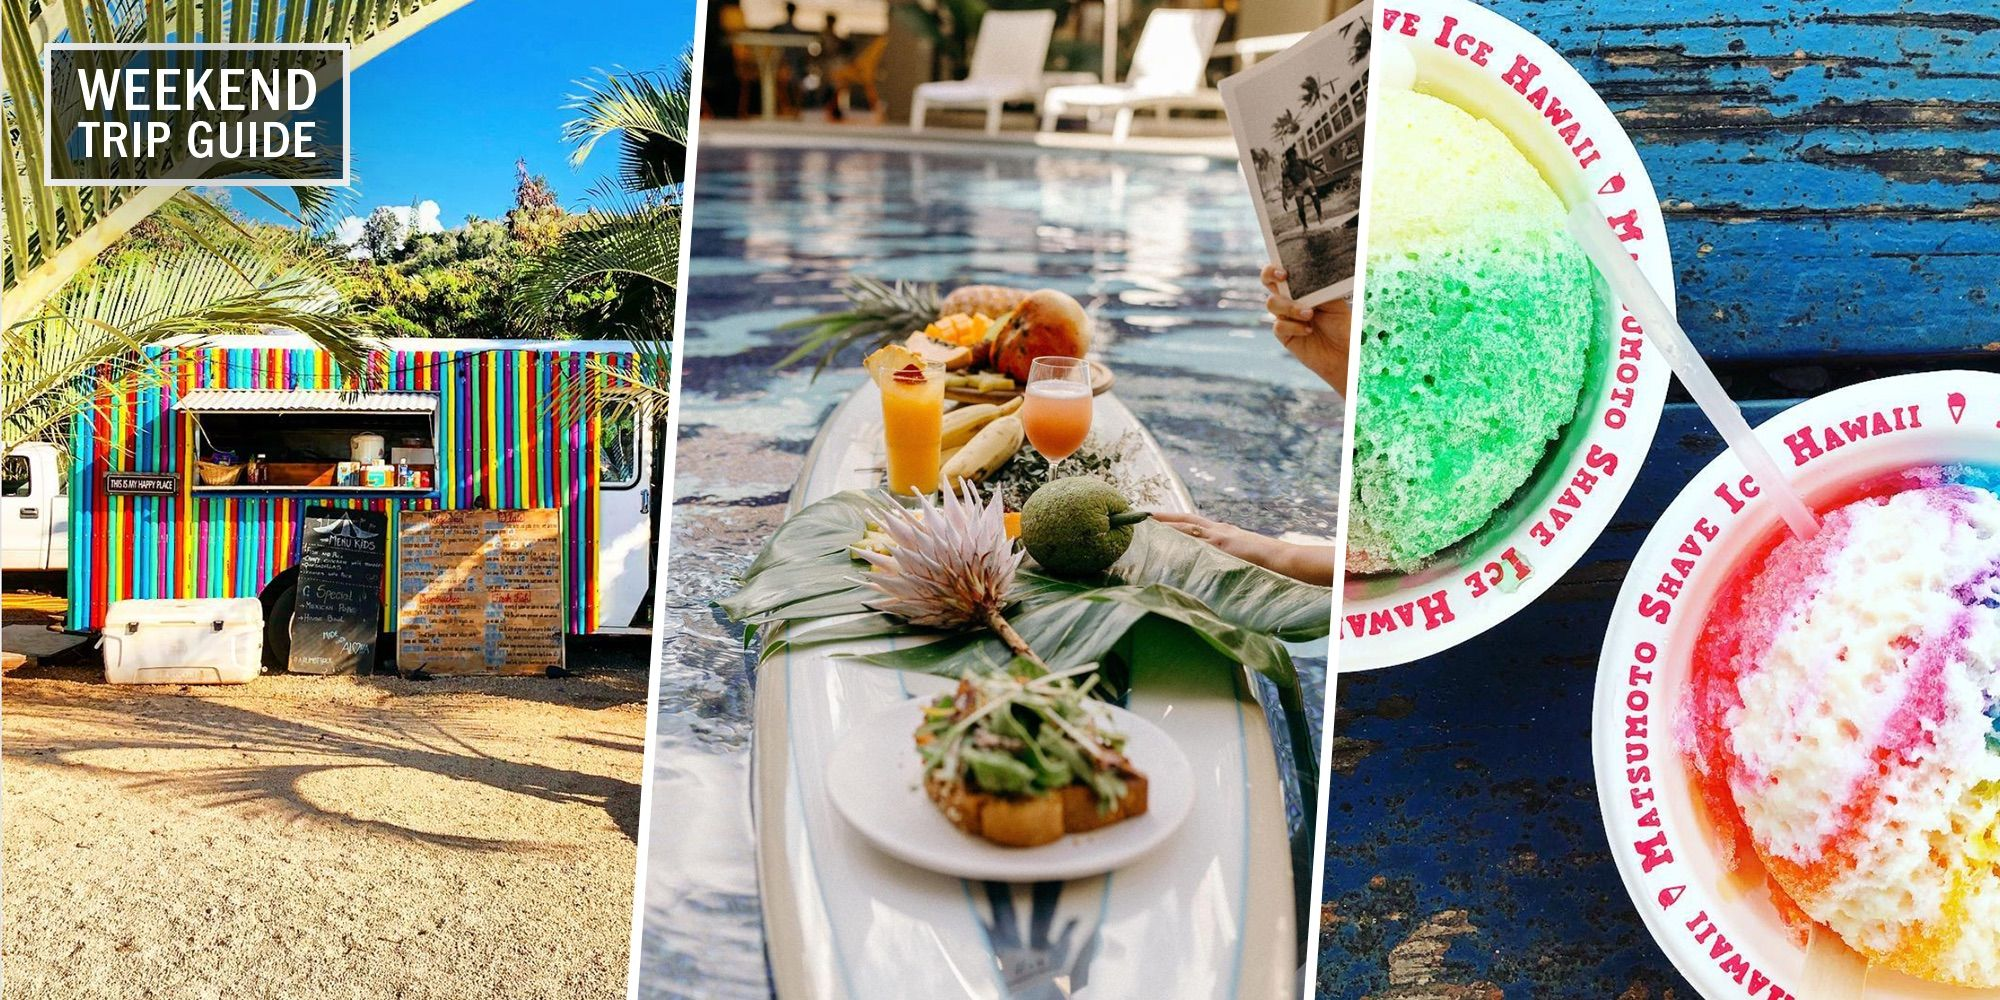 Weekend Trip Guide: Where to Stay, Eat, and Drink in Honolulu, Hawaii